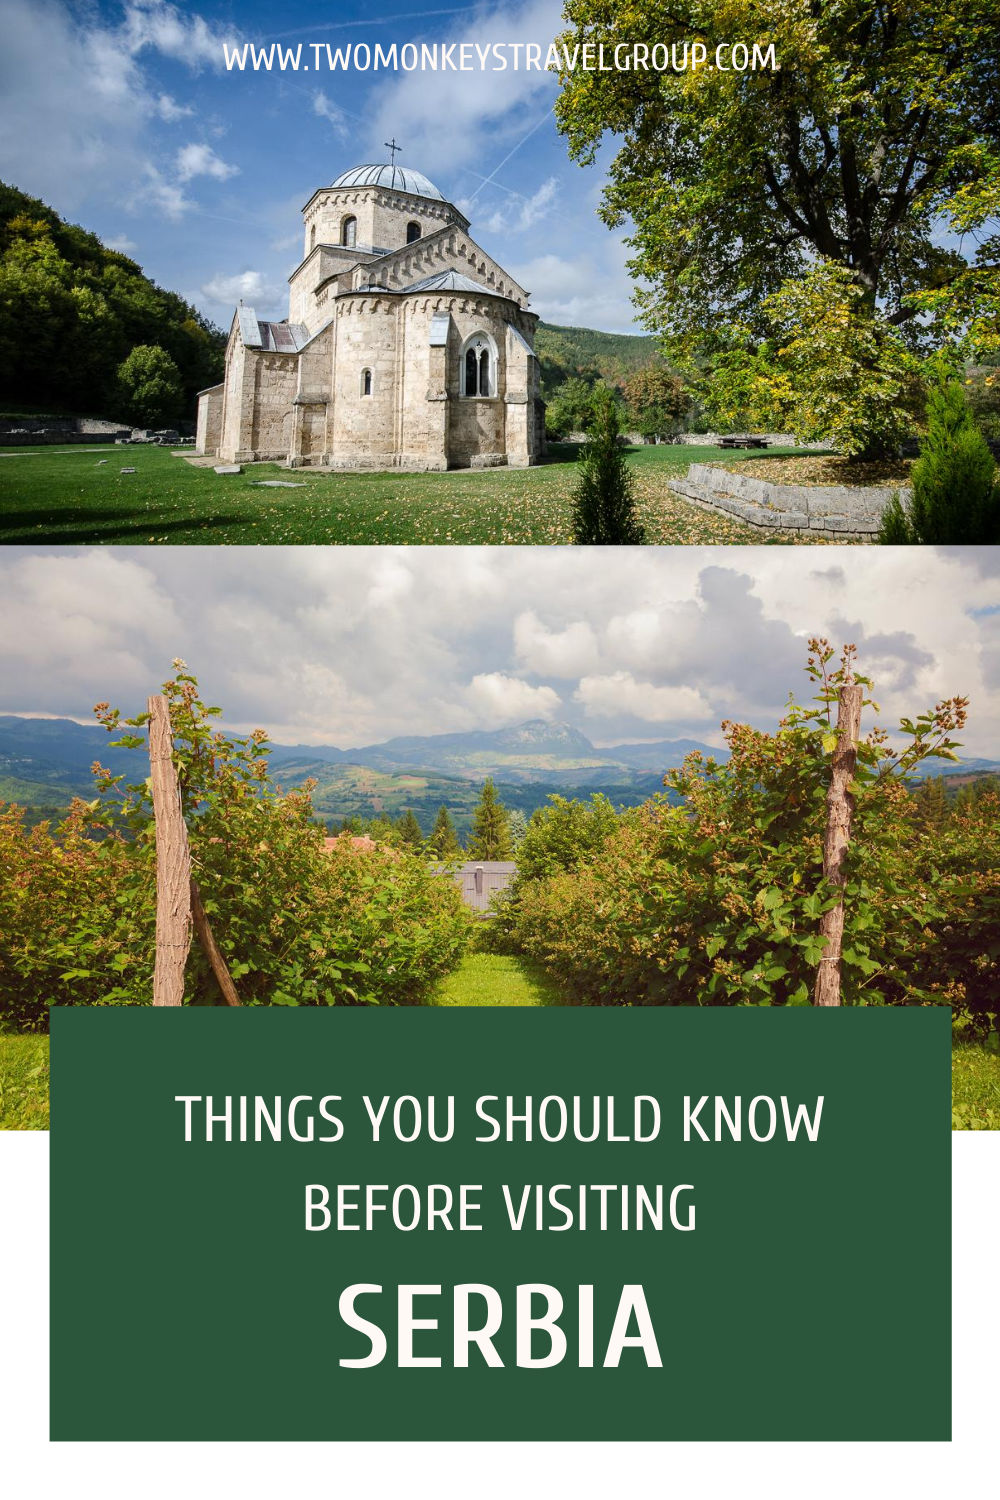 35 Things You Should Know Before Visiting Serbia